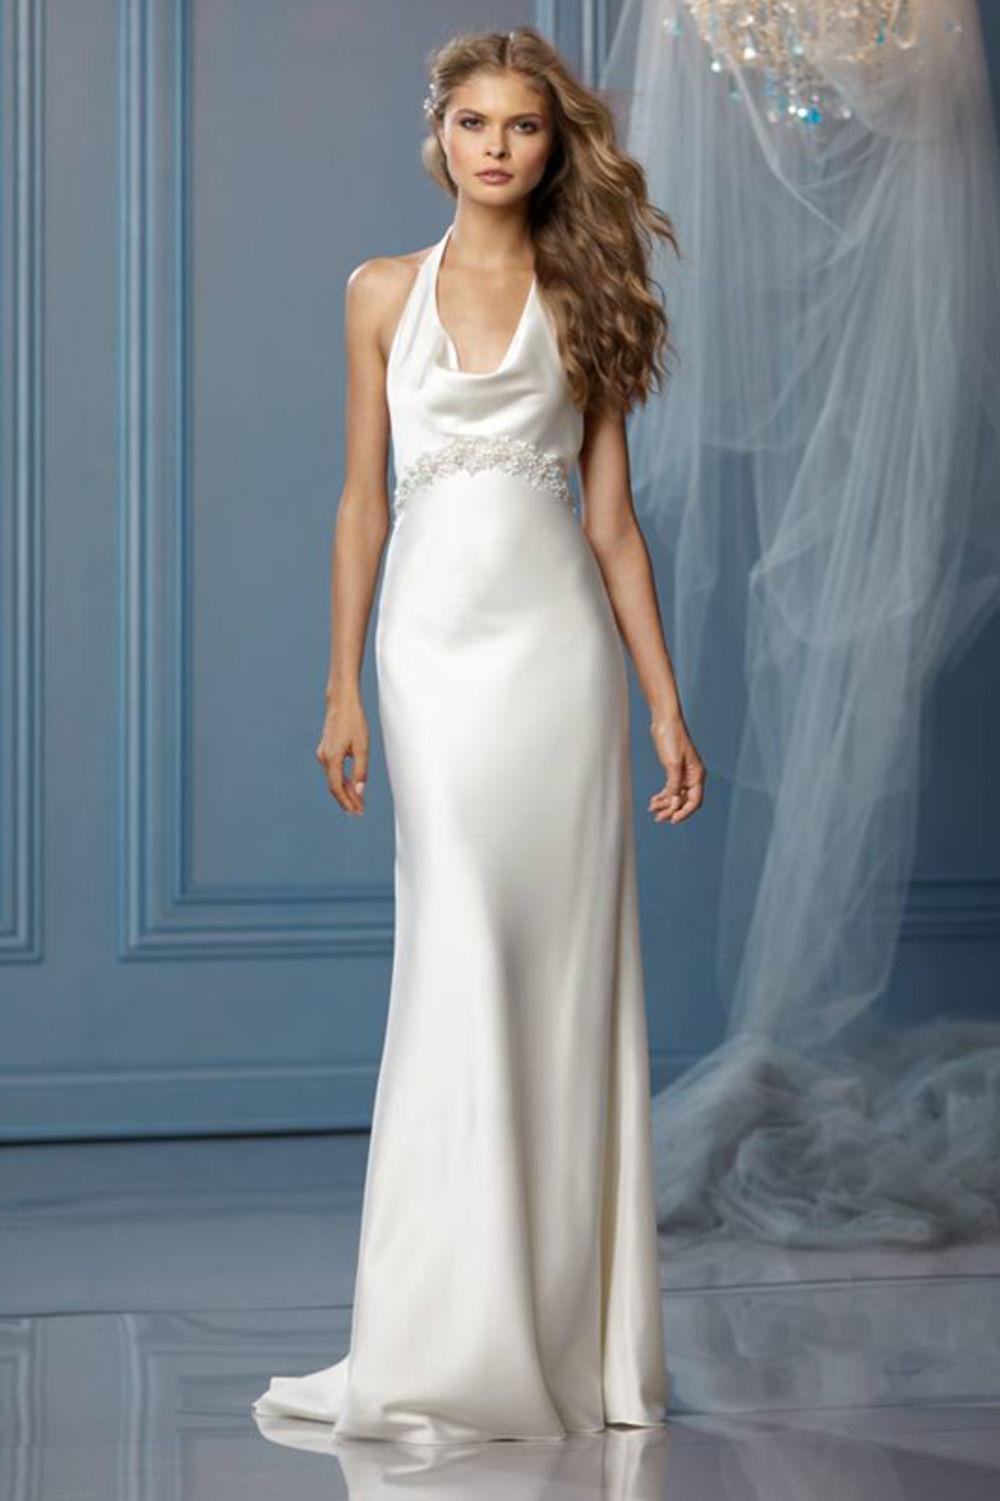 ... destination wedding dresses luxury ydqhgzl